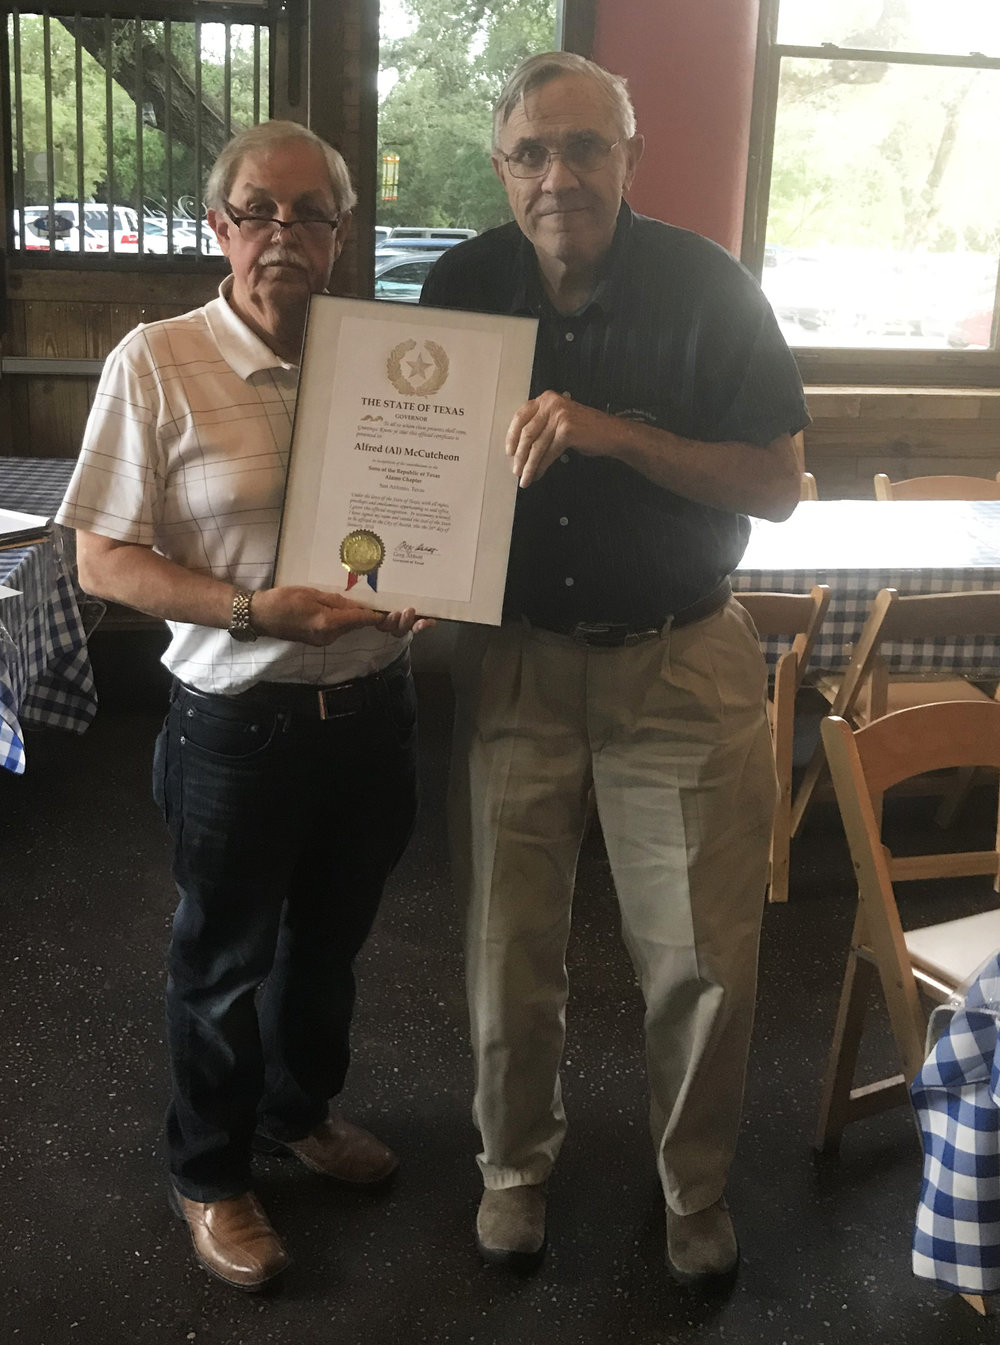 Chapter Secretary    Eldon Cagle   presents  Administrator of Education    Al McCutcheon   with a certificate of appreciation from  Texas   Gov. Greg Abbott,  for his efforts with the Alamo Chapter's education program.  Eldon  solicited the certificate & submitted all the paperwork for the application in  Mr. McCutcheon's  name. Great job guys!